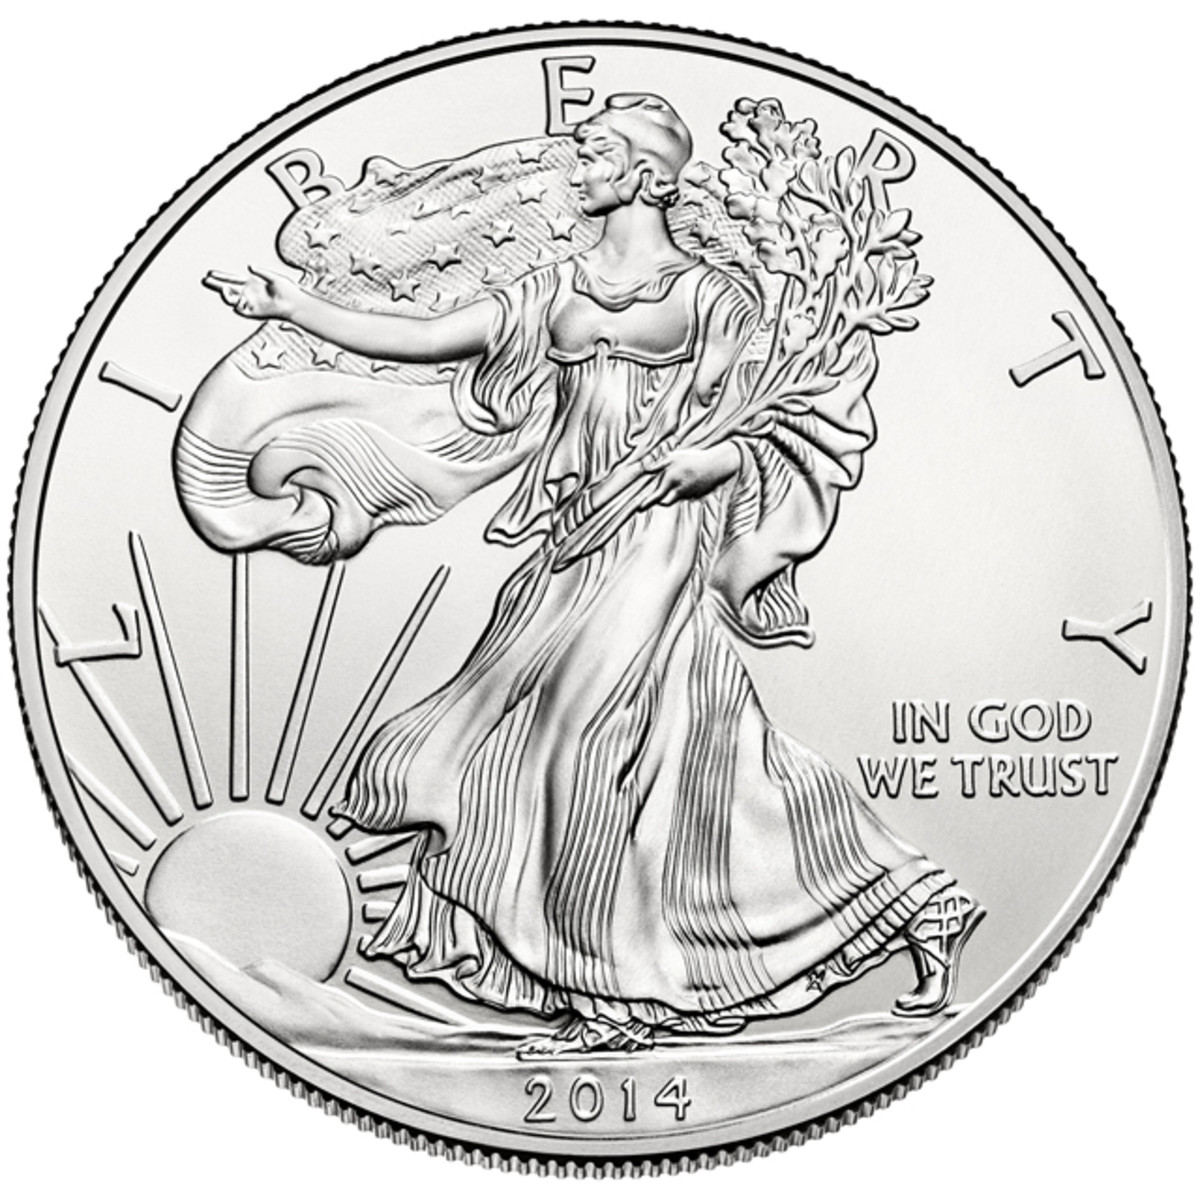 One-ounce silver American Eagle bullion coins went on sale Nov. 17 since rationing began.